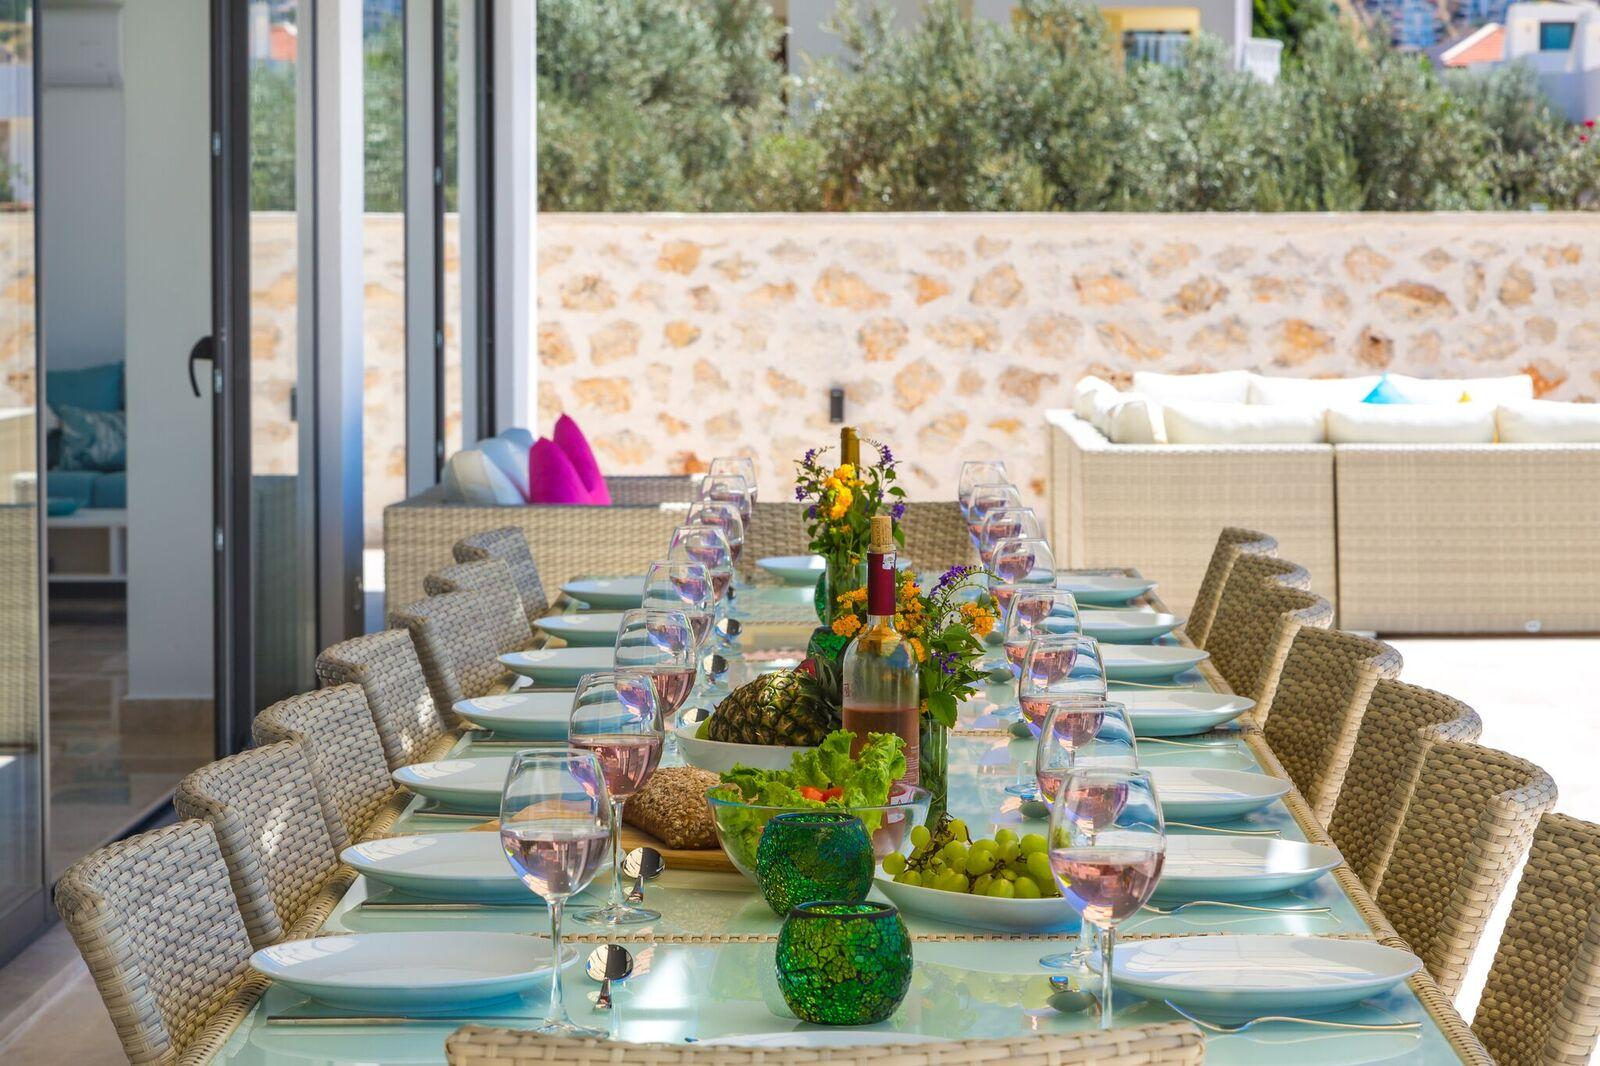 Terrace Dining for 16 people